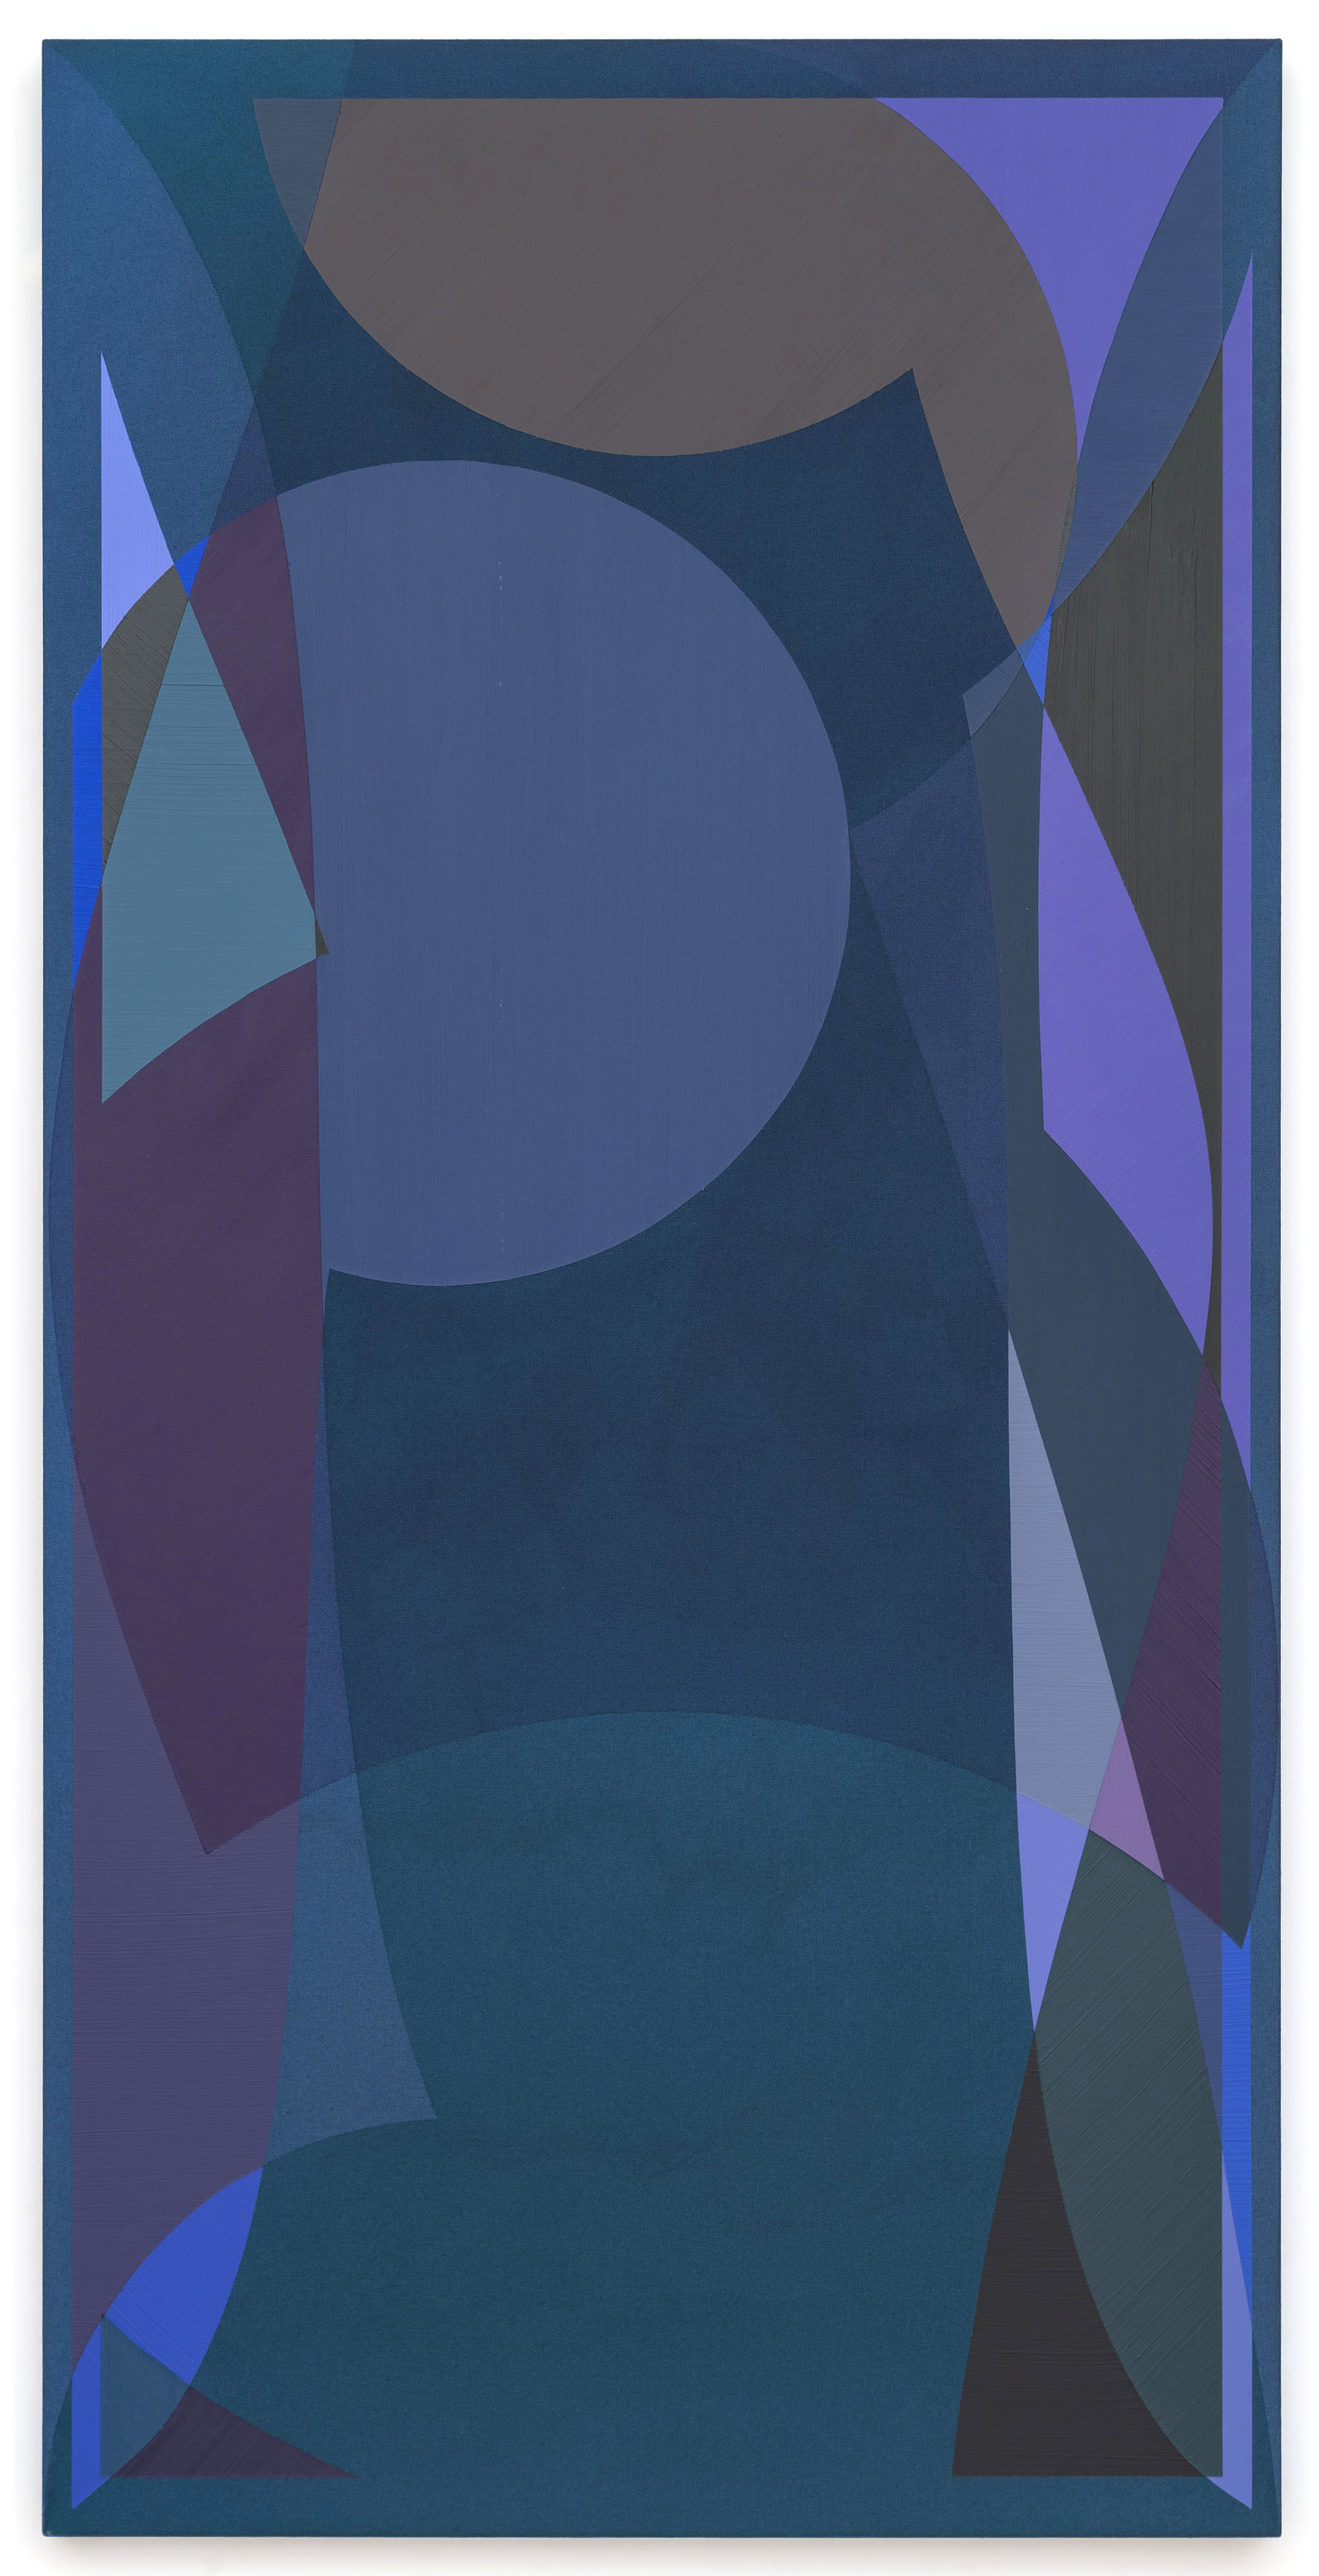 Halsey Hathaway, Untitled, 2013, Acrylic on dyed canvas, 60 x 30 inches